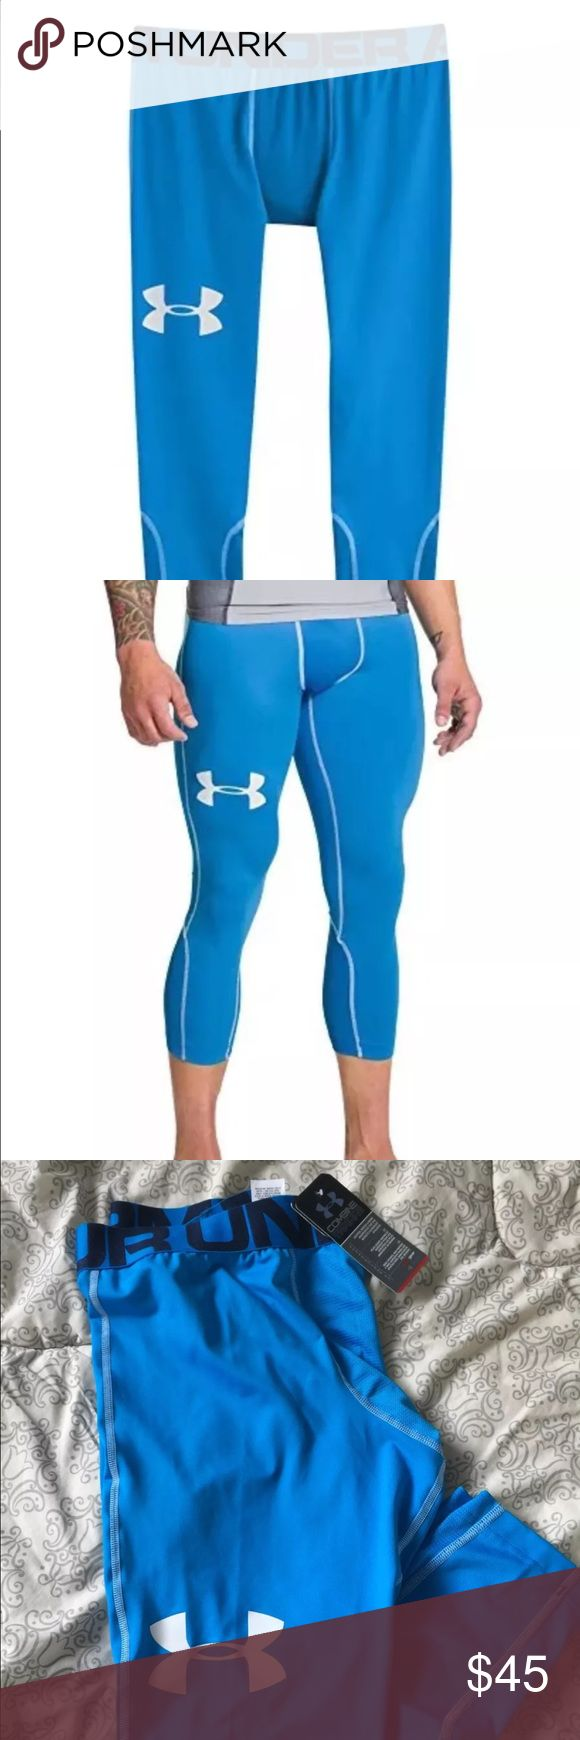 Under Armour Heat Gear Compression Training Tights Authentic, new with tags. Under Armour Men's Heat Gear Compression Training Tights 3/4 Length True Fit Compression Elastic blend for comfort and flexibility.  Moisture Transport System wicks sweat & dries fast by pulling sweat to the surface and speeding evaporation which keeps your body cool dry and light. Including Anti-odor technology prevents the growth of odor causing microbes, engineered elastic waistband with ARMOUR wordmark. Under…